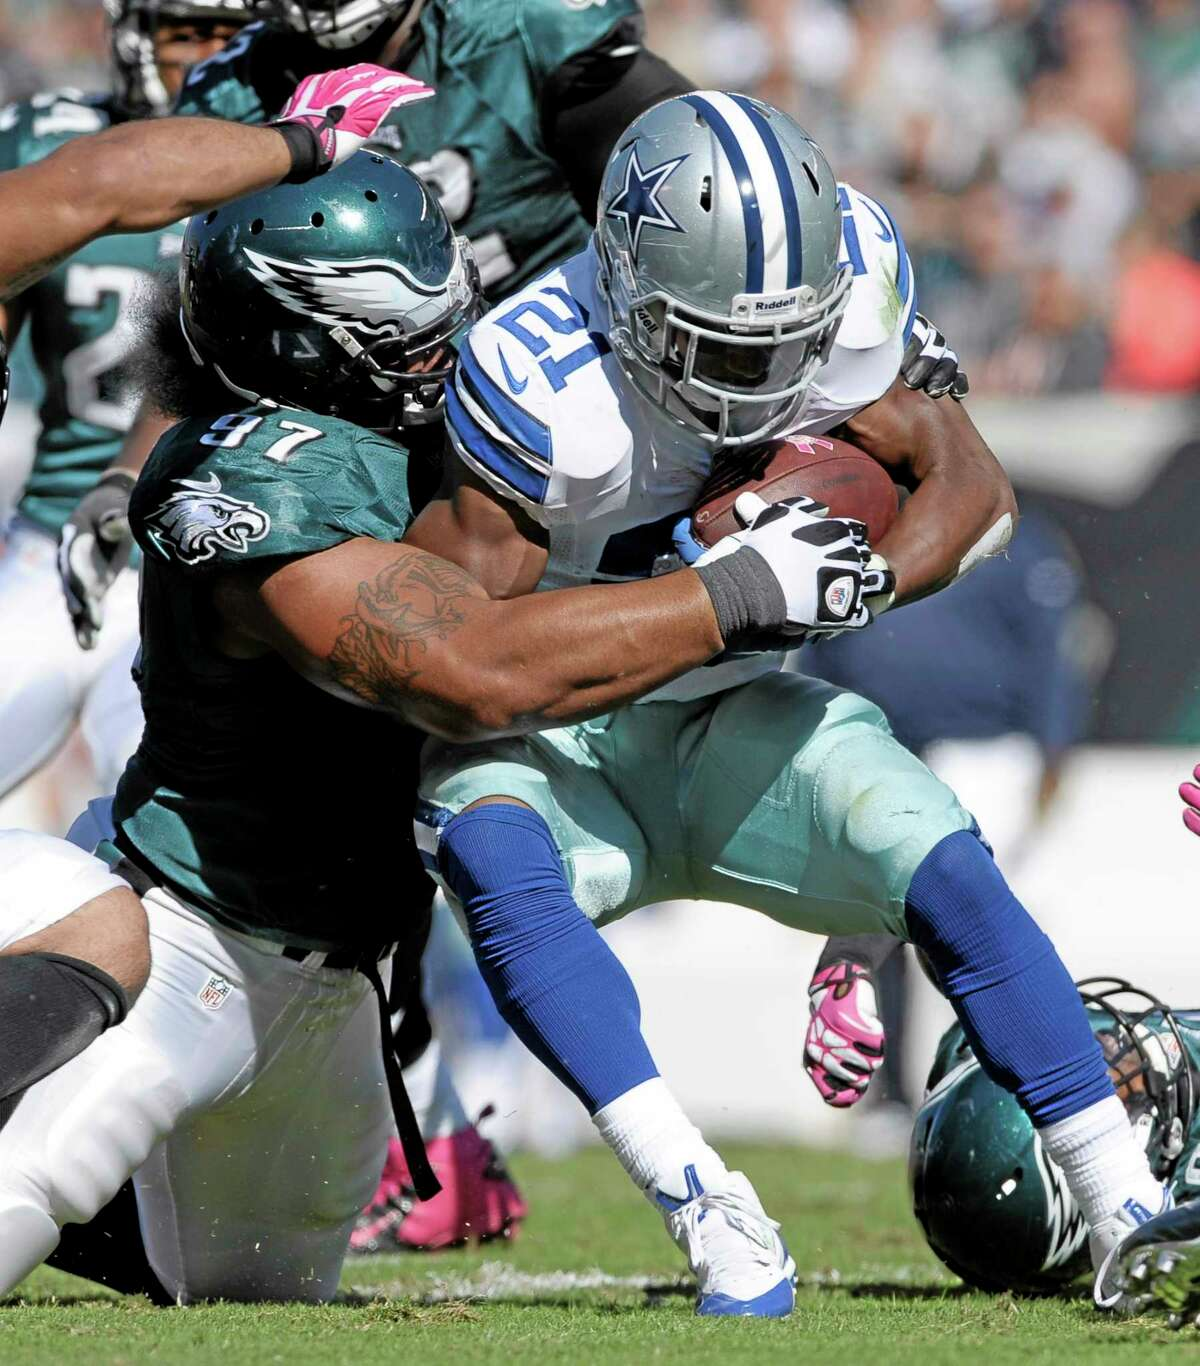 Dallas Cowboys running back Joseph Randle (21) is stopped by Eagles nose tackle Isaac Sopoaga (97) during the first half of Oct. 20's game in Philadelphia. The New England Patriots acquired Sopoaga from the Eagles Tuesday along with a sixth-round pick in 2014 for a fifth-rounder next year. The 32-year-old Sopoaga helps replace Pro Bowl nose tackle Vince Wilfork, who is out for the season.